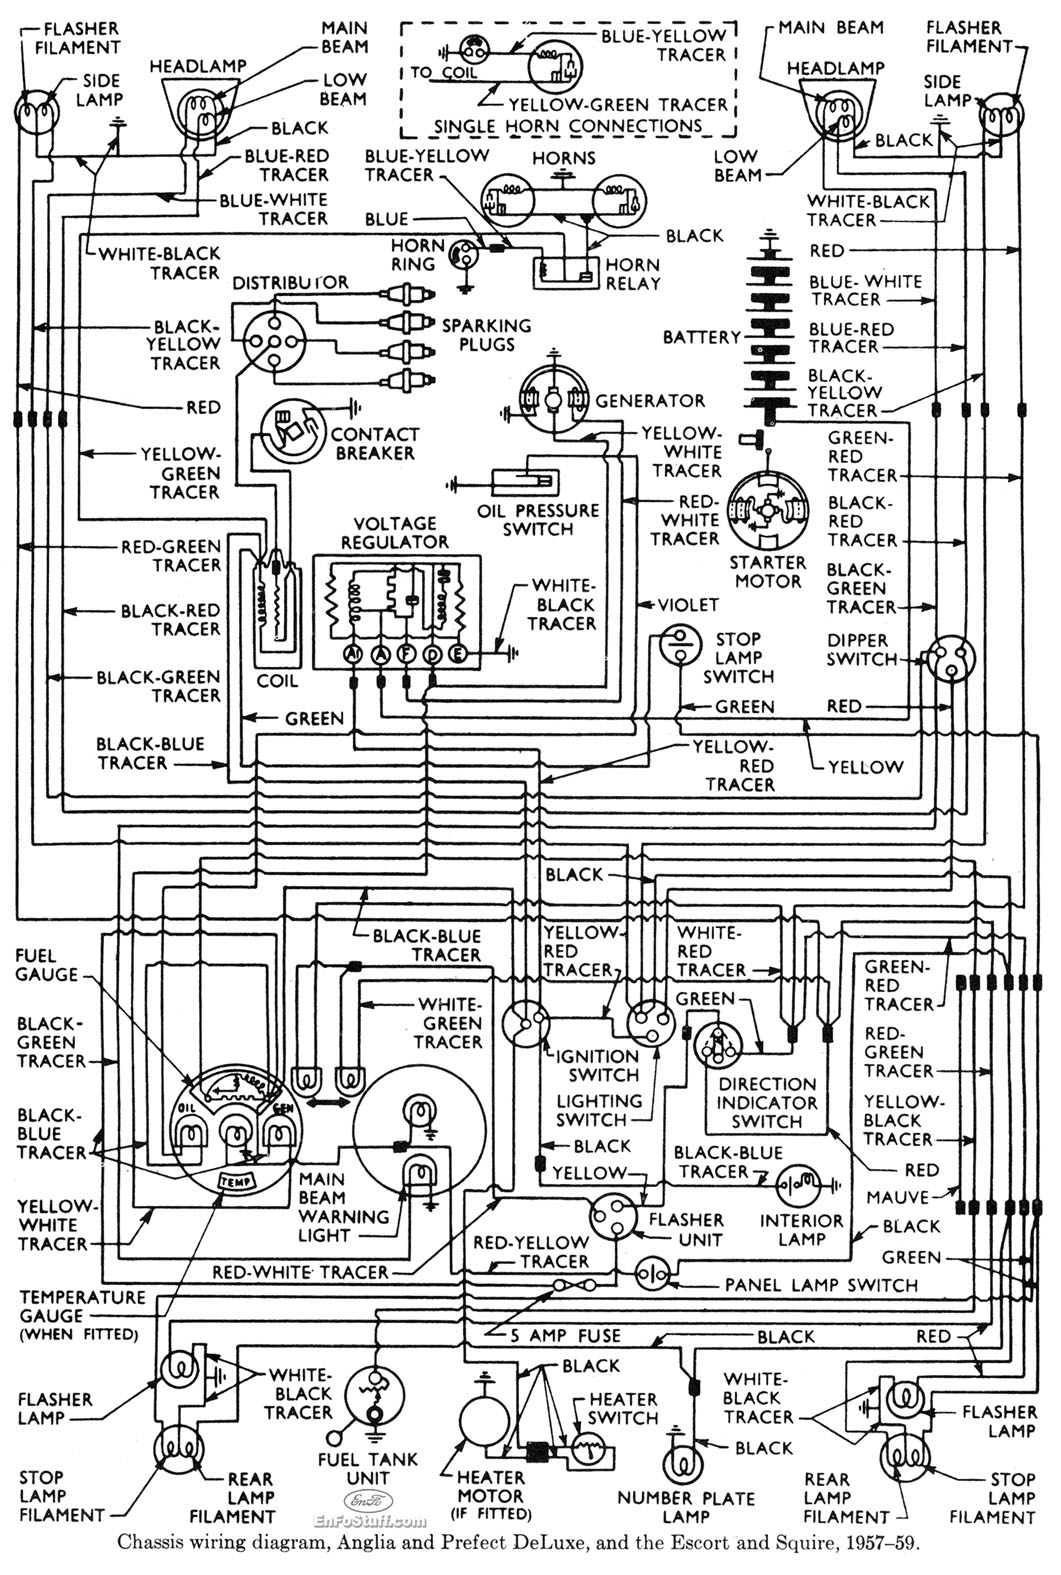 Par Car Gas Key Switch Wiring Diagram Trusted Diagrams Club Ds All Kind Of U2022 3 Position